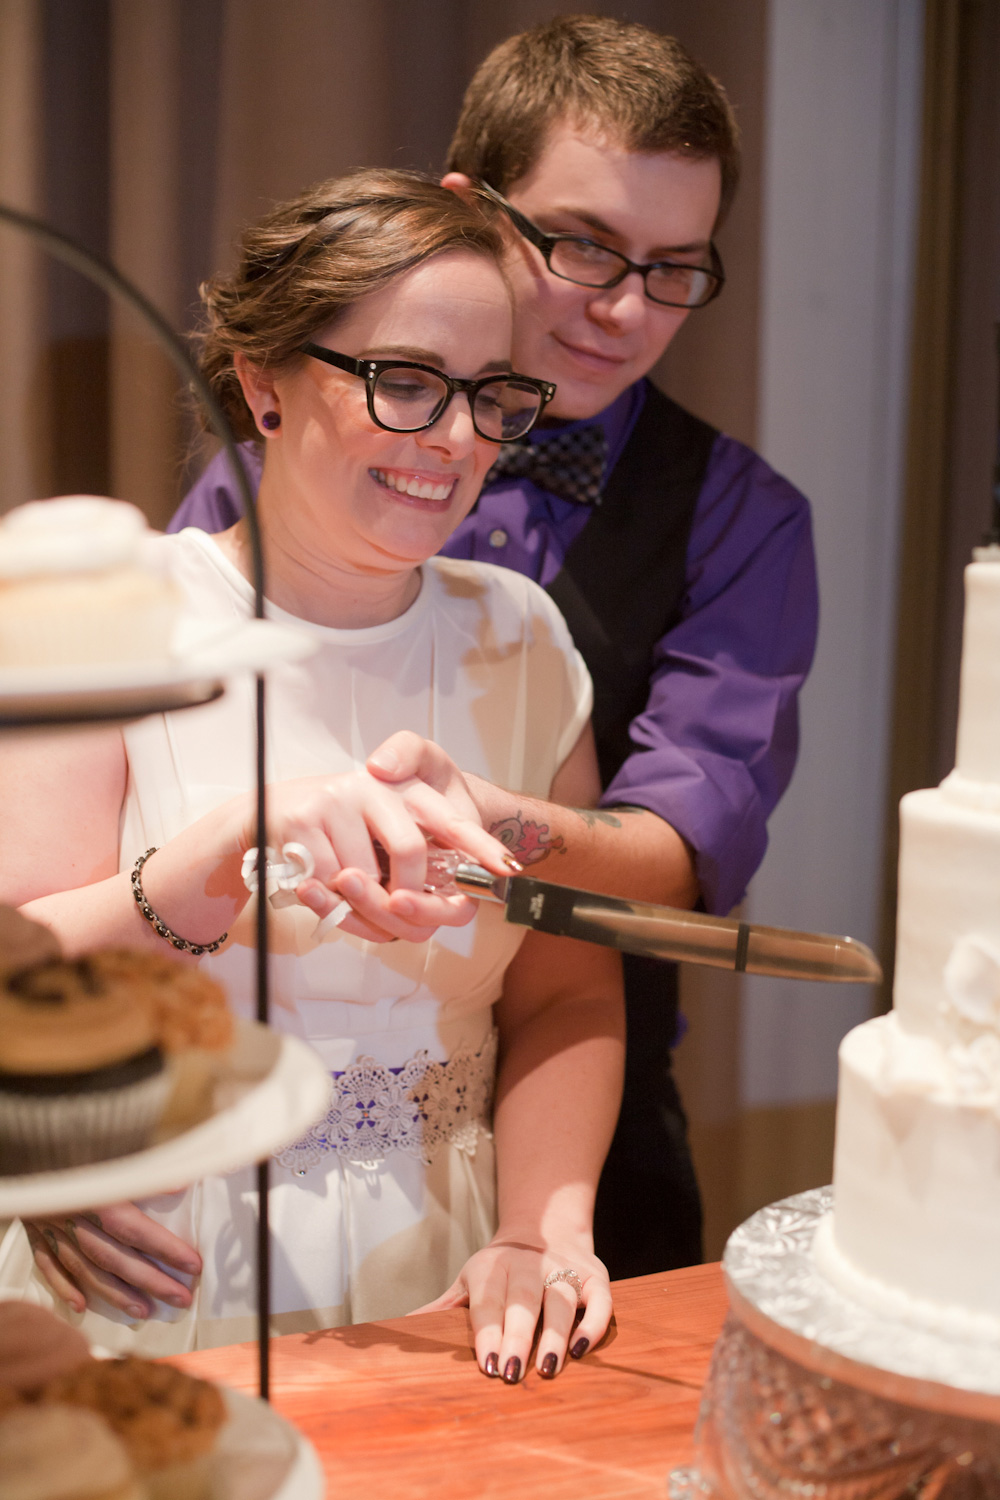 The bride and groom preparing to cut their wedding cake